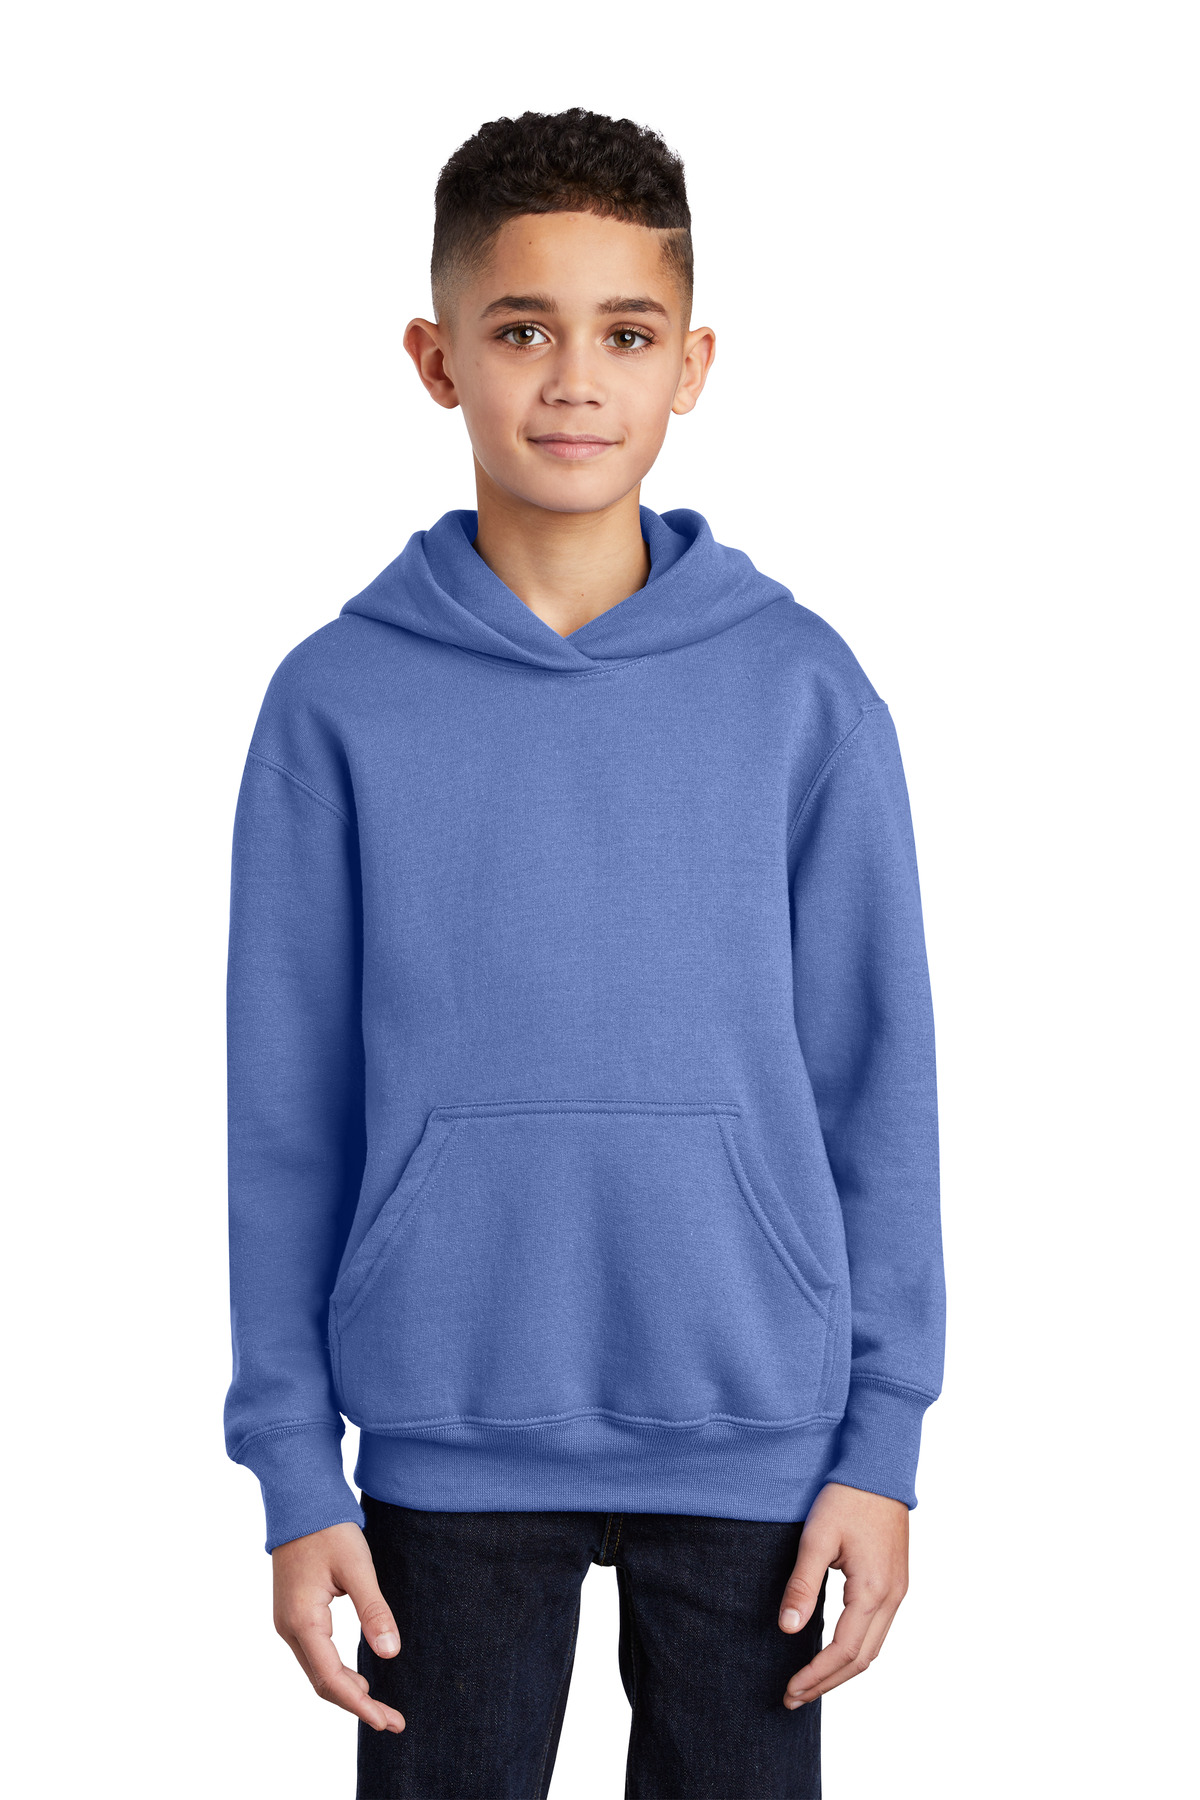 Port & Company ®  - Youth Core Fleece Pullover Hooded Sweatshirt.  PC90YH - Carolina Blue